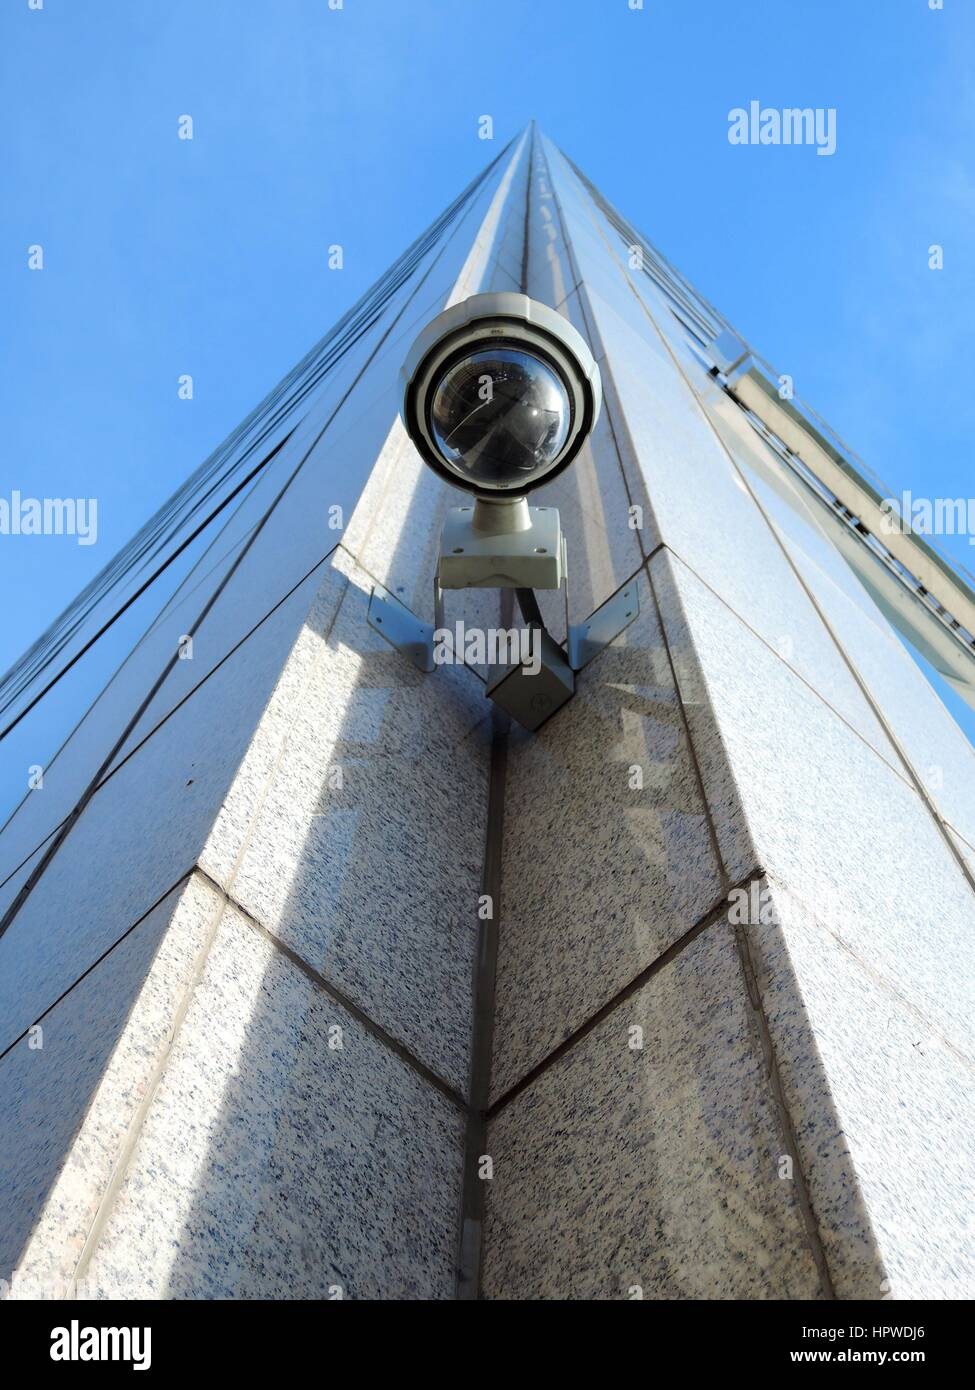 Dome Surveillance Security Cameras - Stock Image